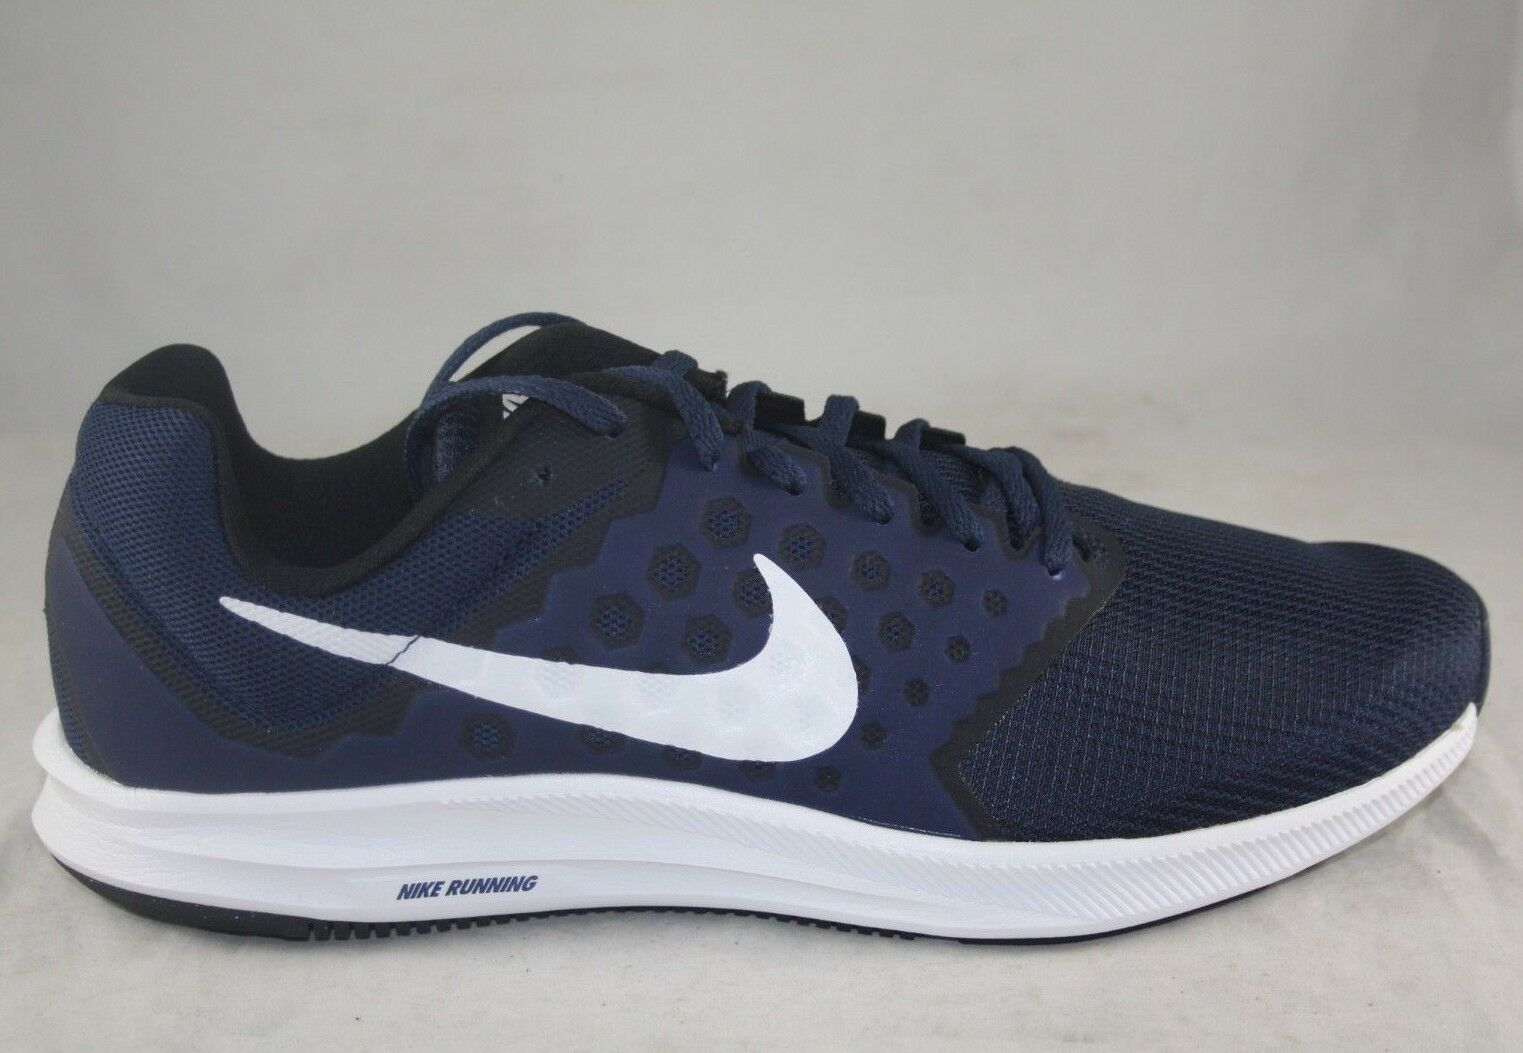 NIKE DOWNSHIFTER 7 MIDNIGHT NAVY WHITE 852459-400 RUNNING SNEAKERS SIZE 11